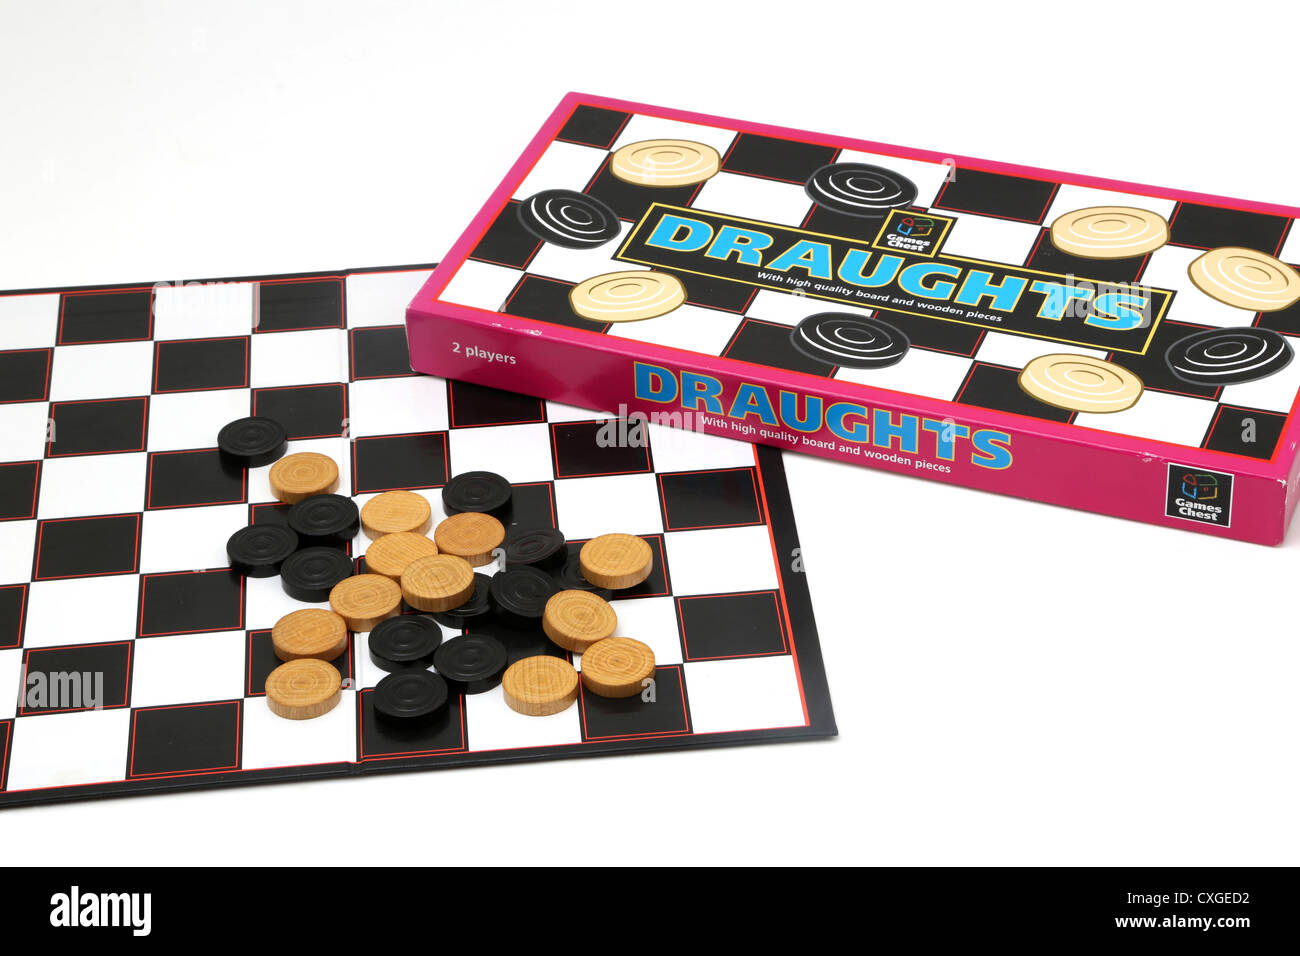 Draughts Board Game And Wooden Discs - Stock Image